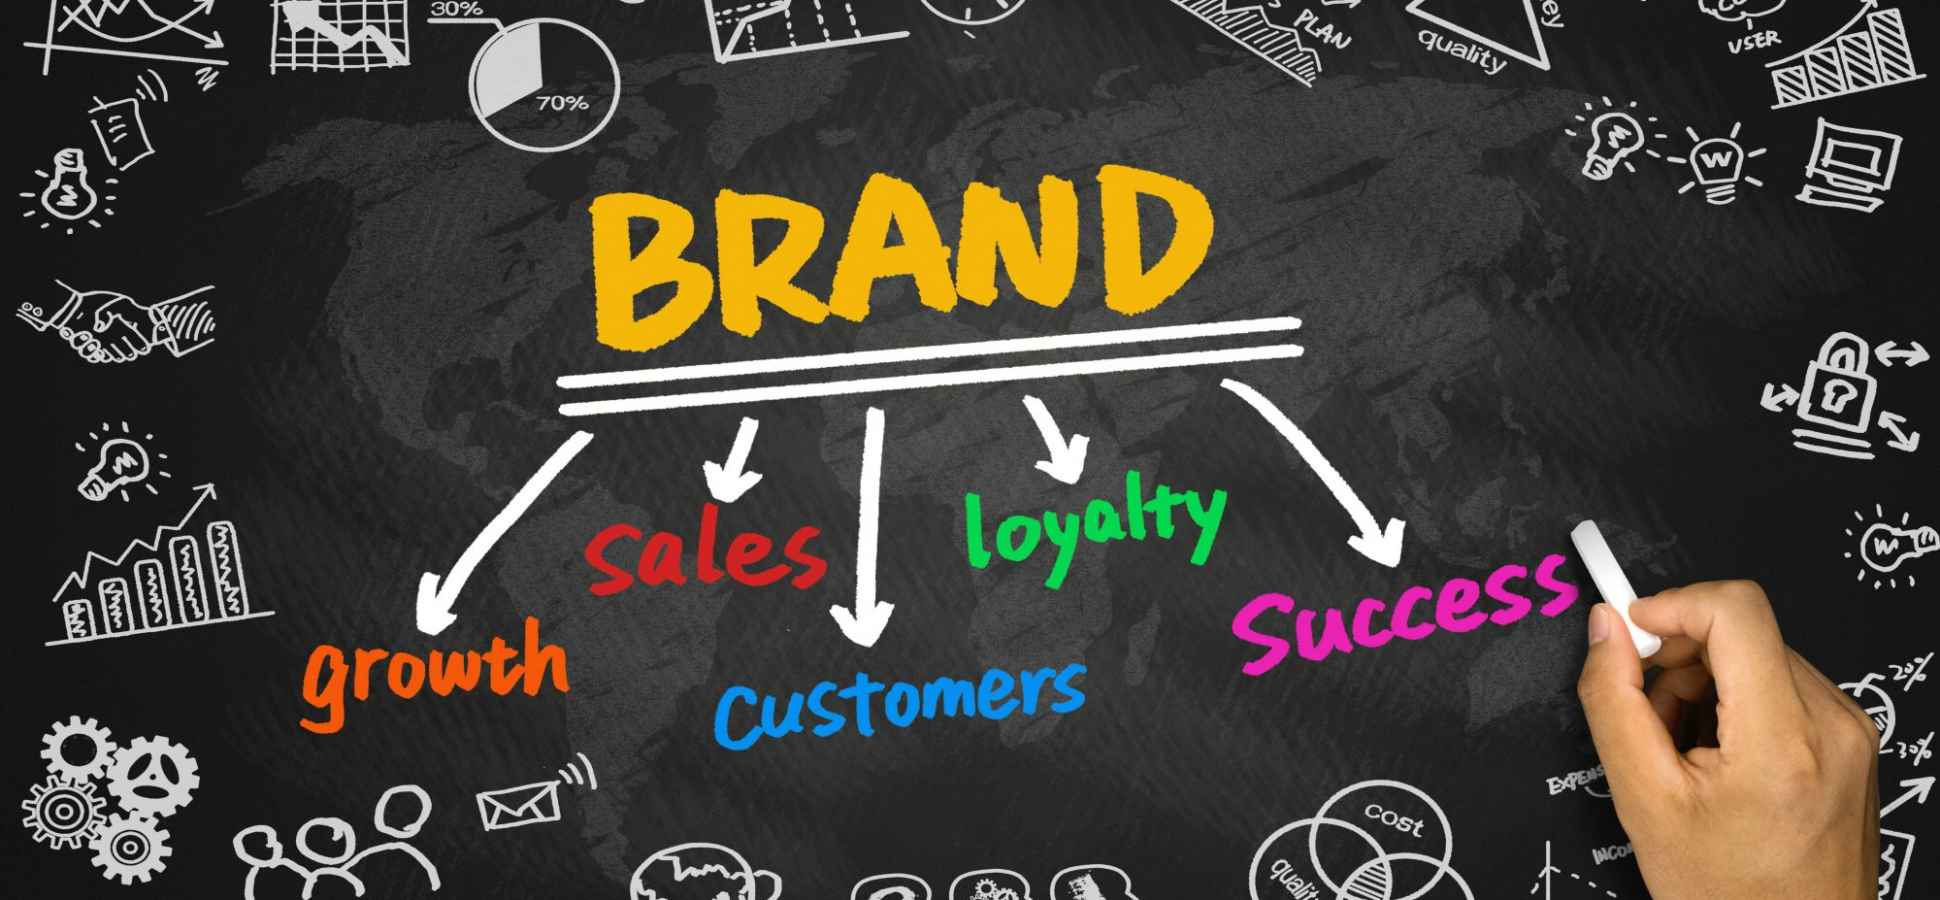 How to Build Brand Loyalty in Customers in 2017